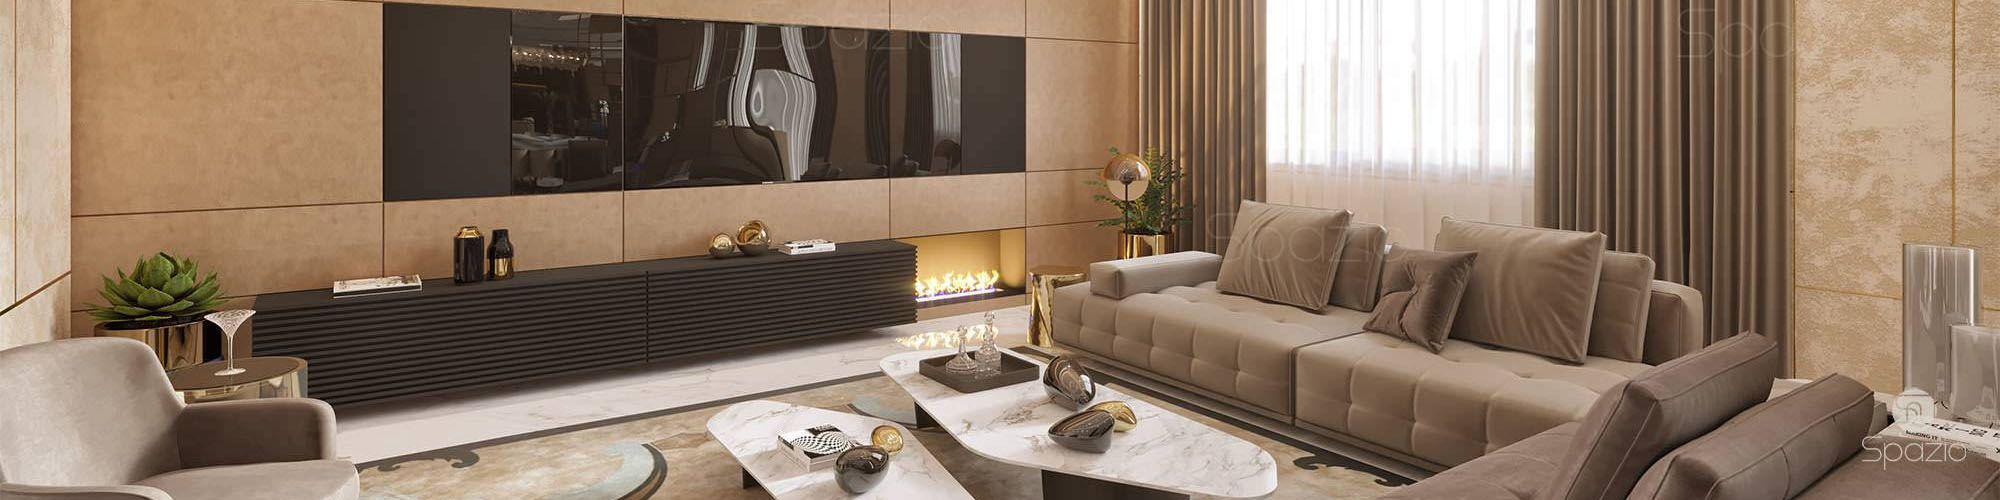 home interior design in uae | Spazio